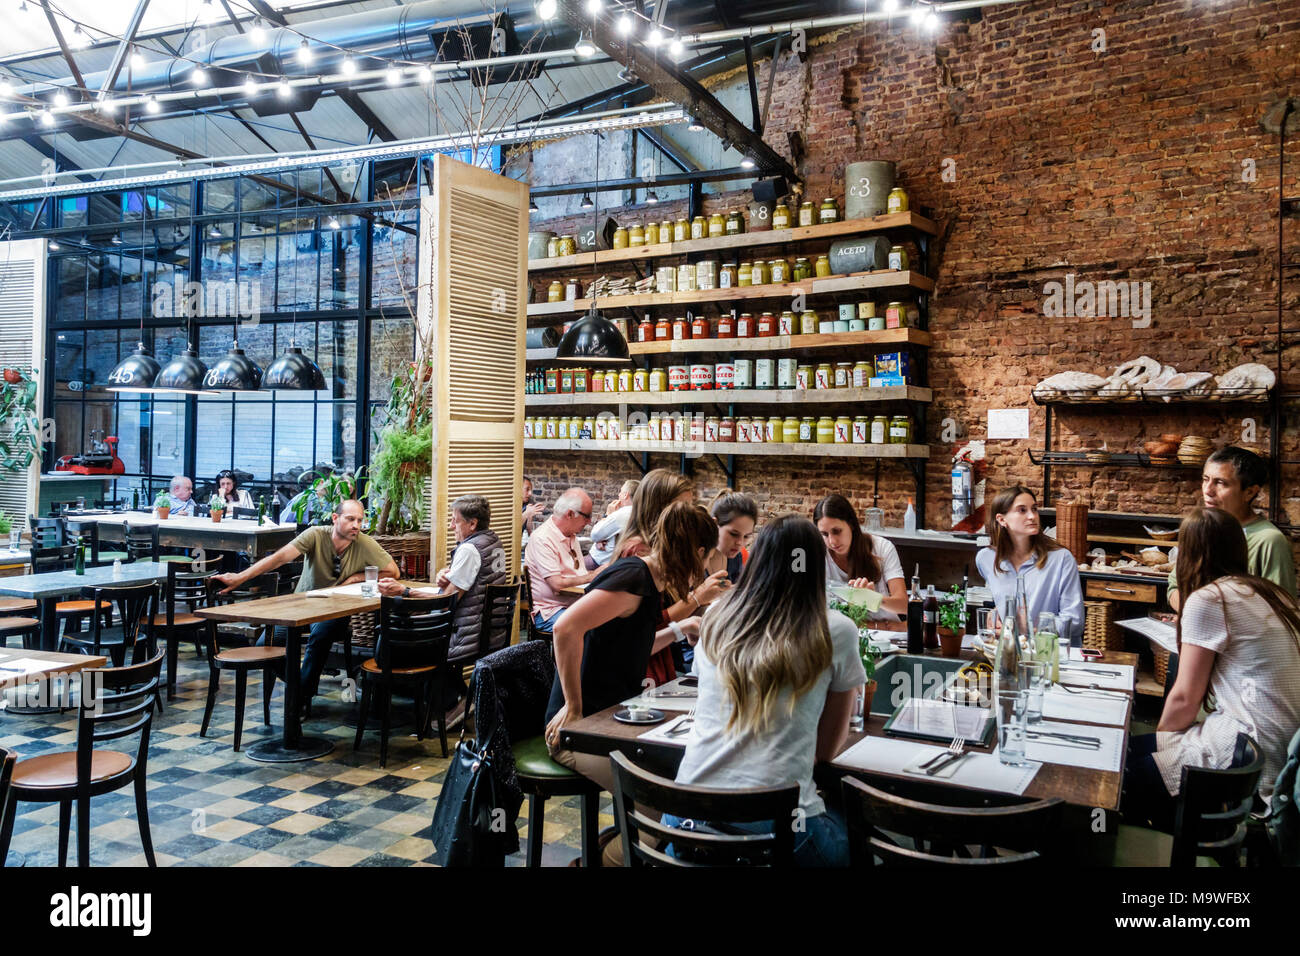 Argentina Buenos Aires The Dandy Libertador Bar Grill Restaurant Restaurants Food Dine Dining Eating Out Casual Cafe Cafes Bistro Bistros Inter Stock Photo Alamy